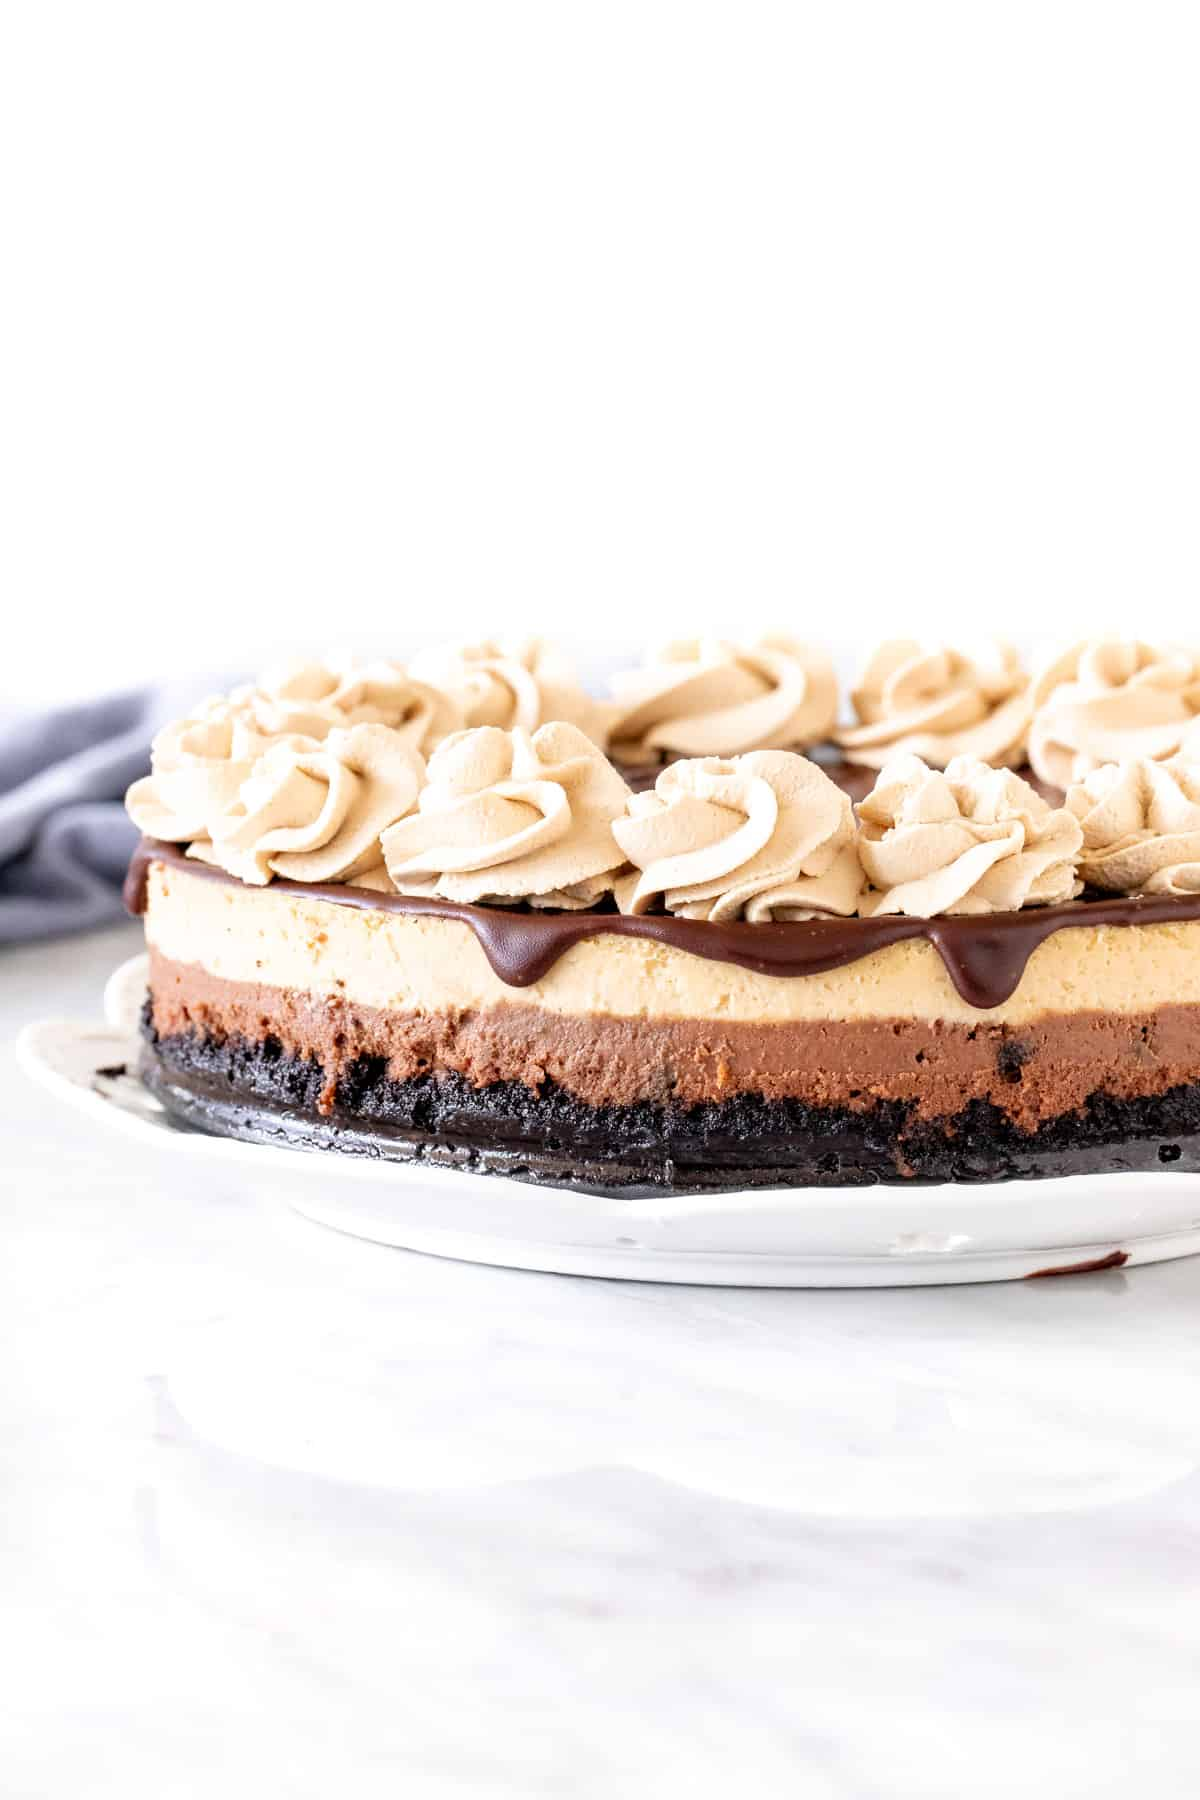 Layered mocha cheesecake with chocolate topping and coffee whipped cream on top